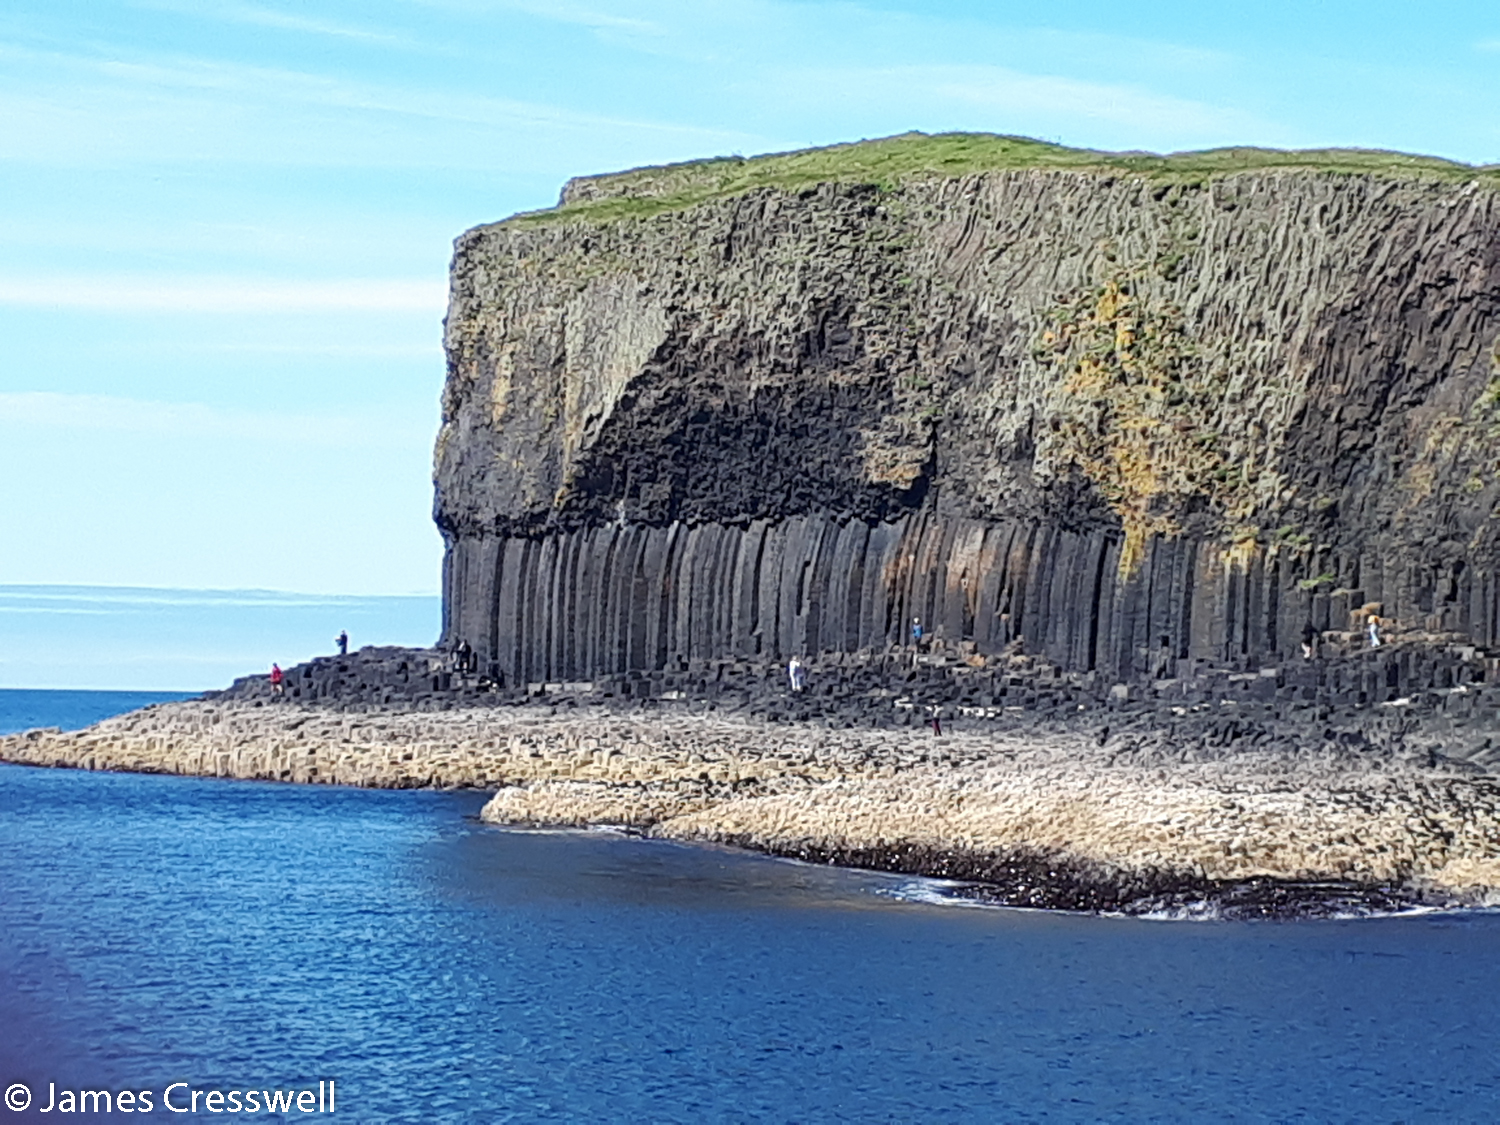 A basalt cliff showing columnar cooling structures